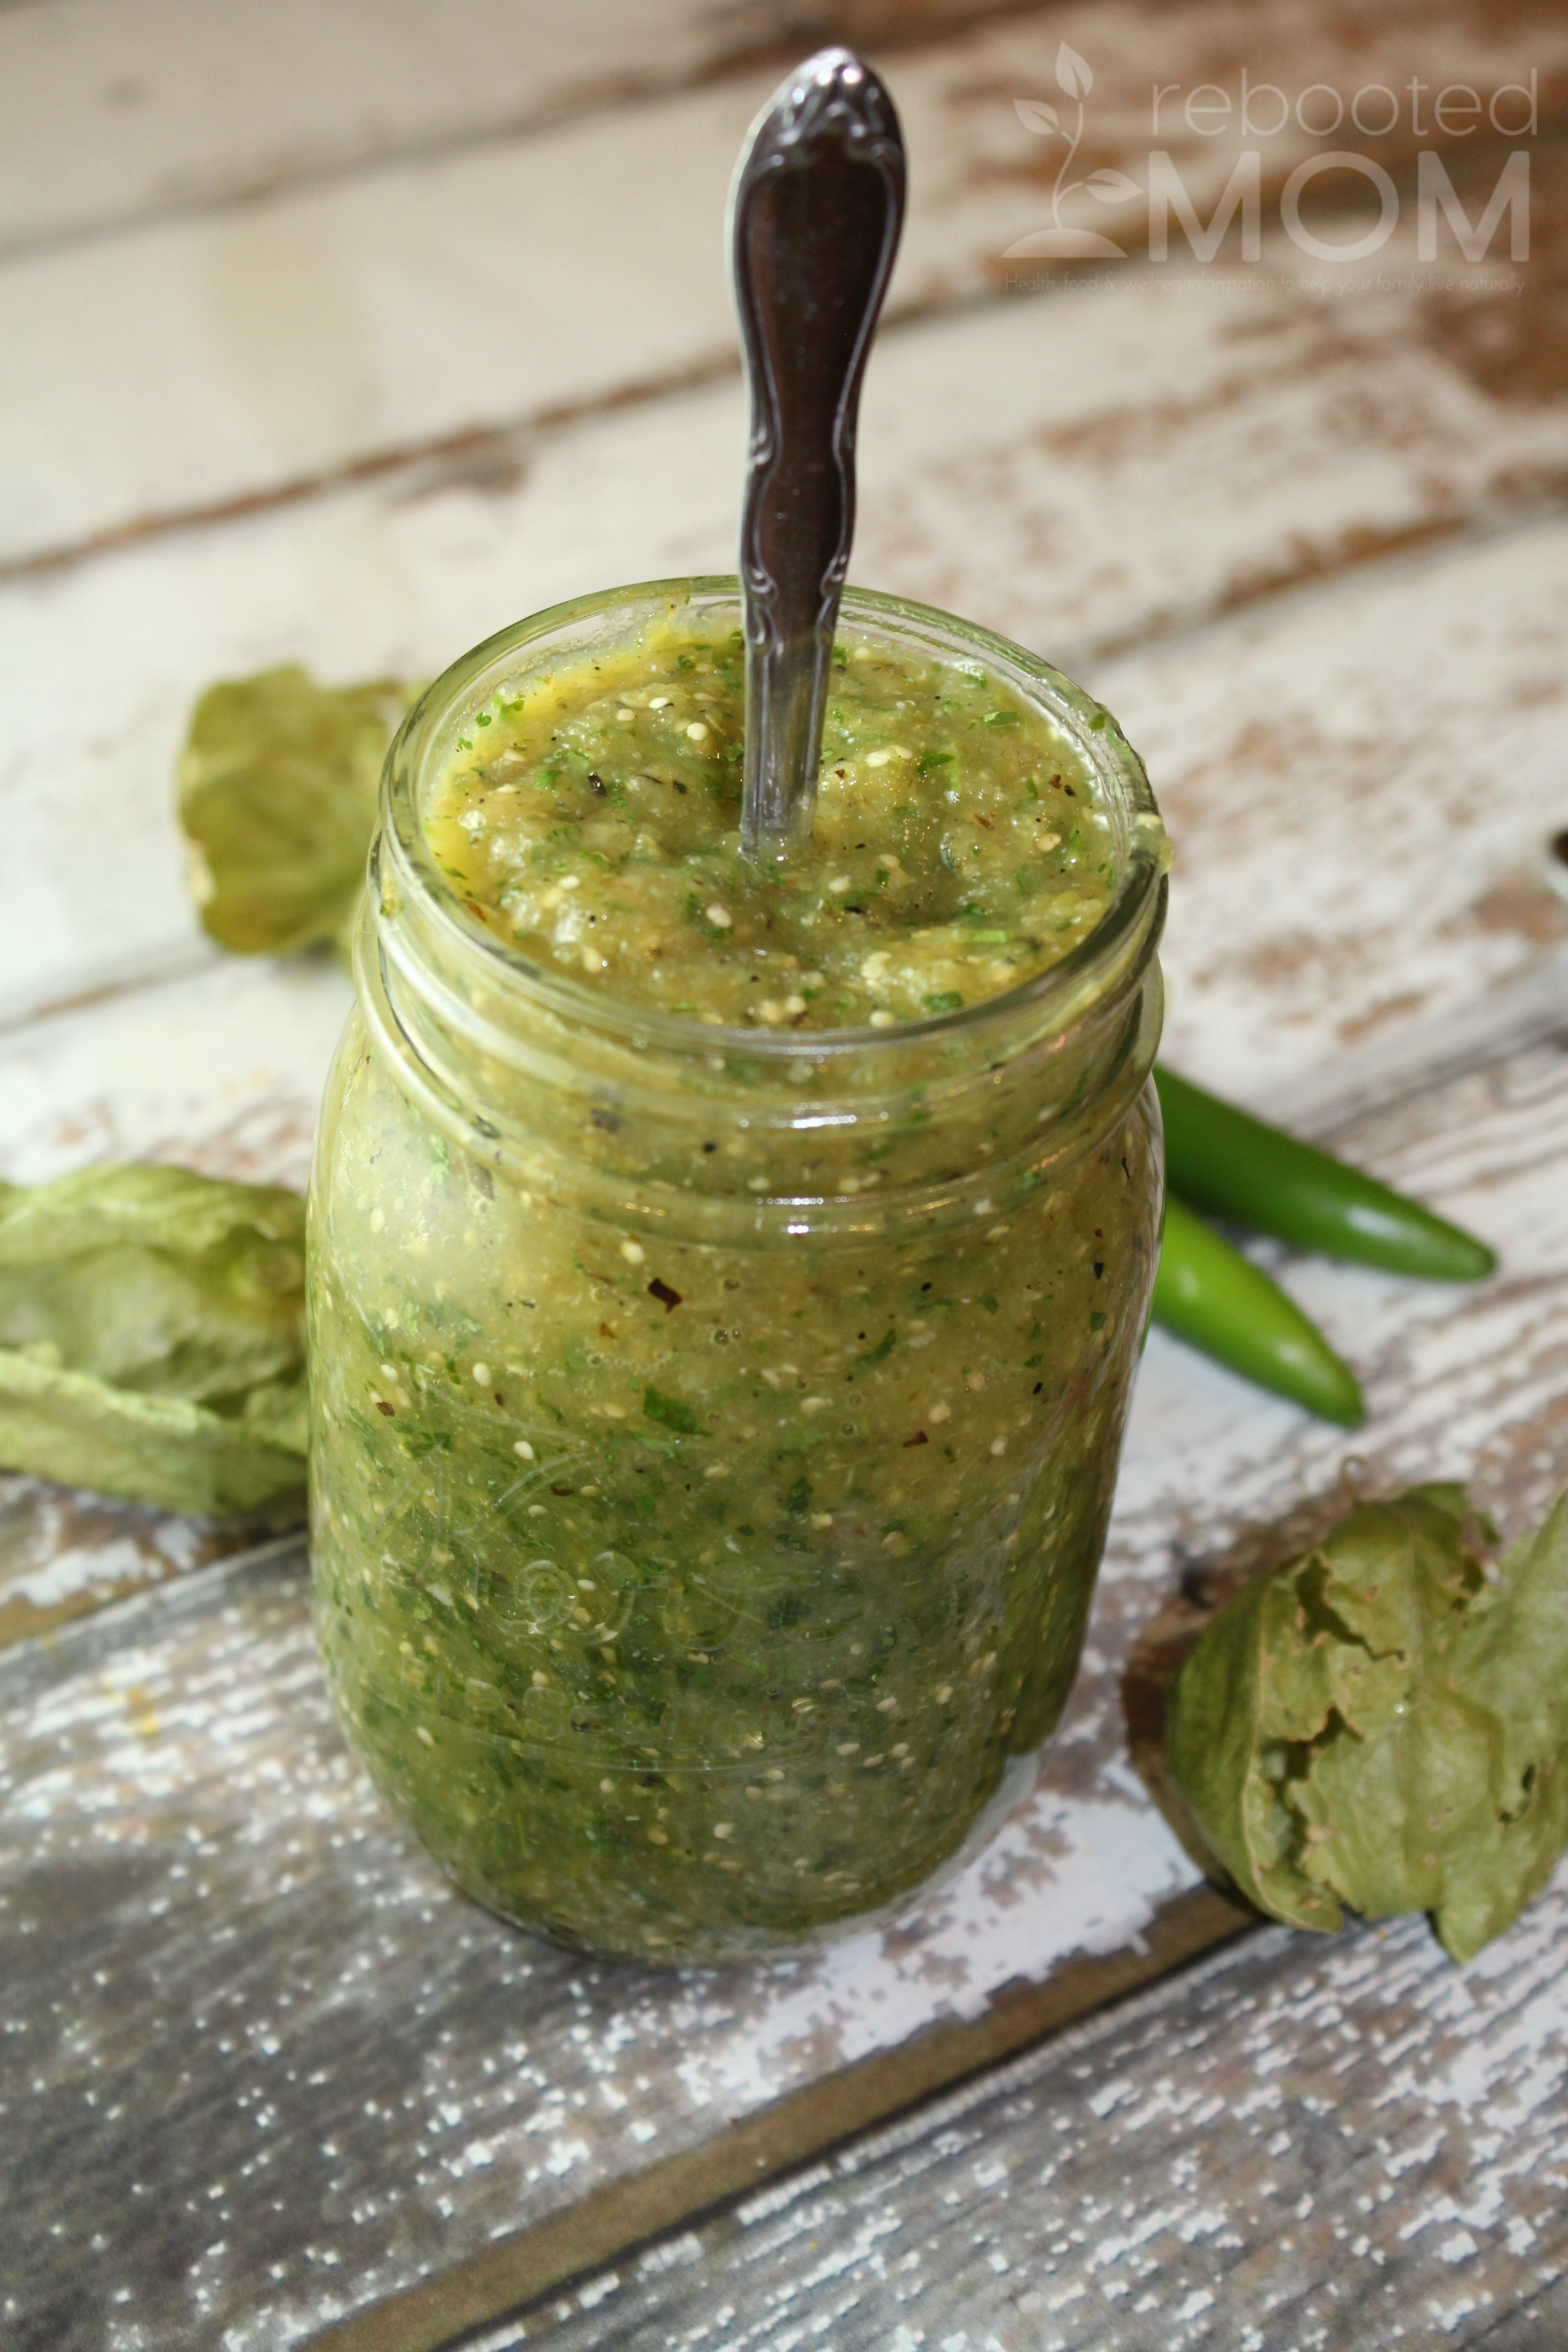 Combine roasted tomatillos with serrano peppers, onions, garlic and oregano for a thick salsa that's full of kick.